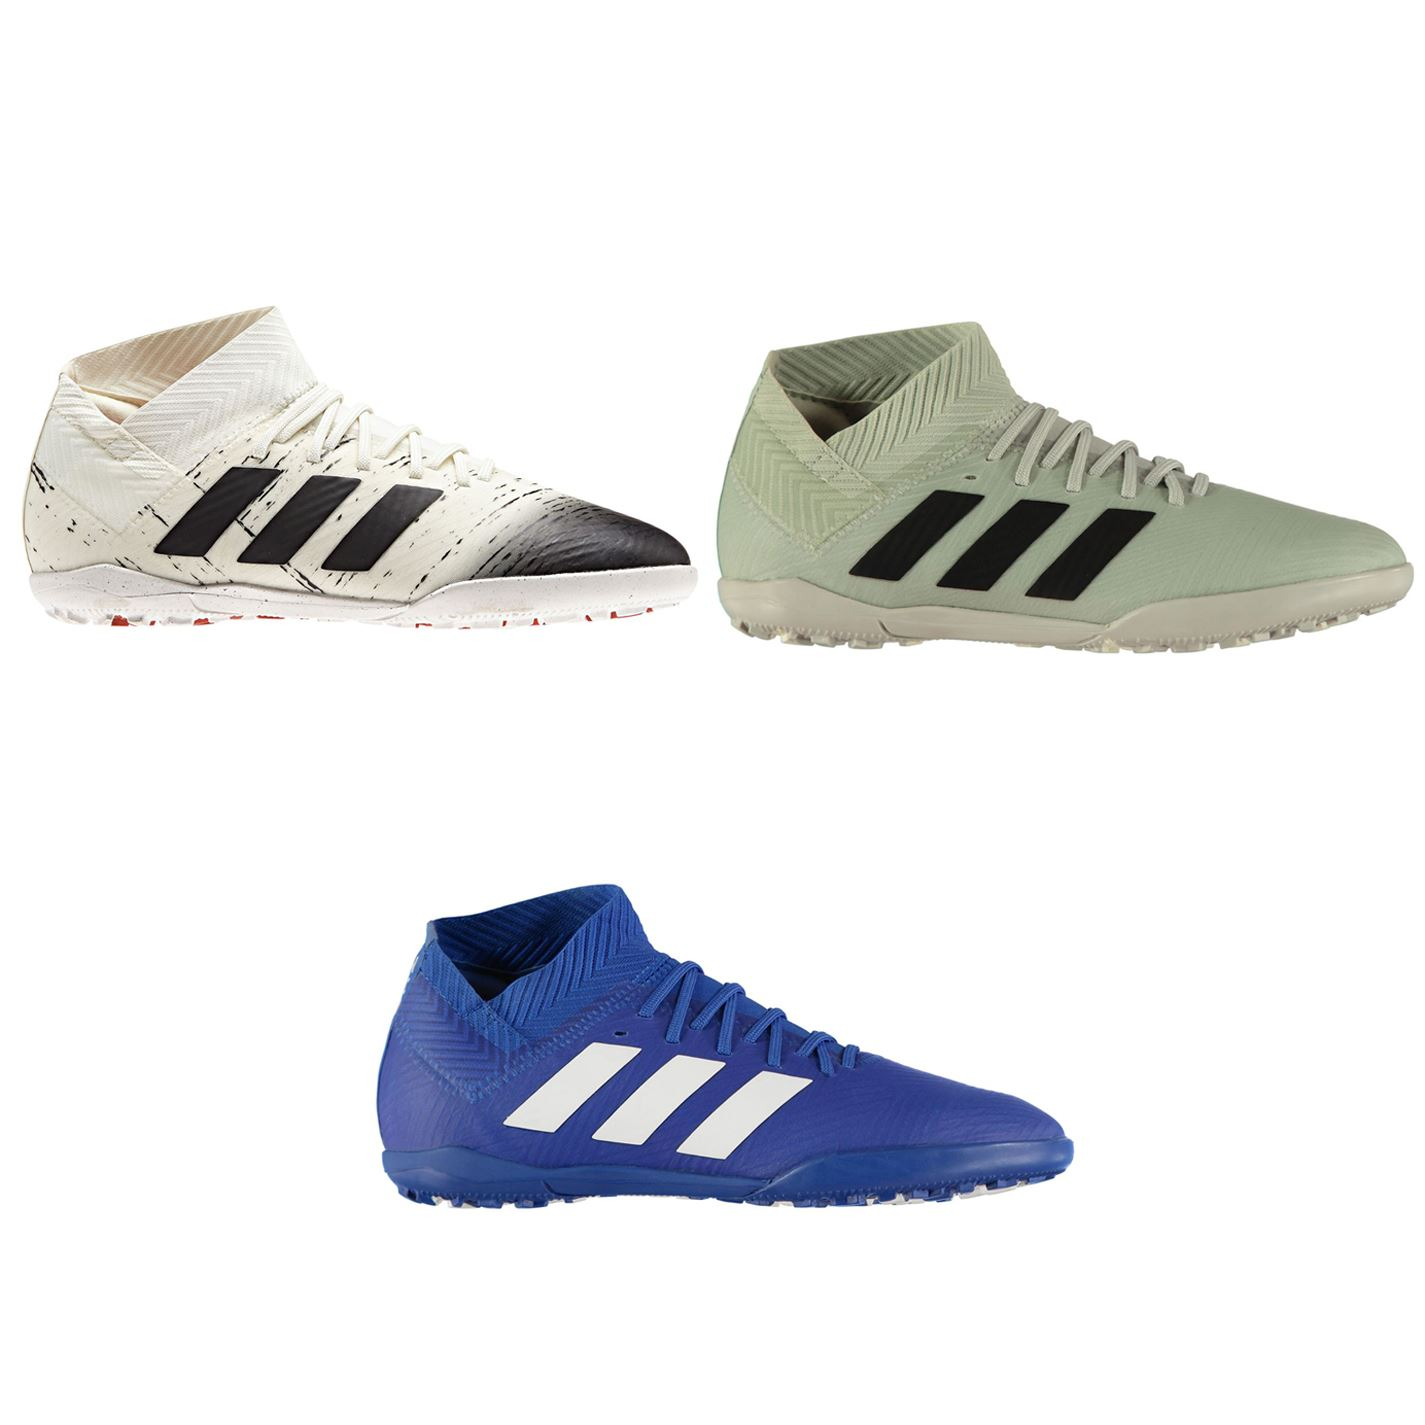 191c9c0d5 ... adidas Nemeziz Tango 18.3 Astro Turf Football Trainers Juniors Soccer  Shoes ...